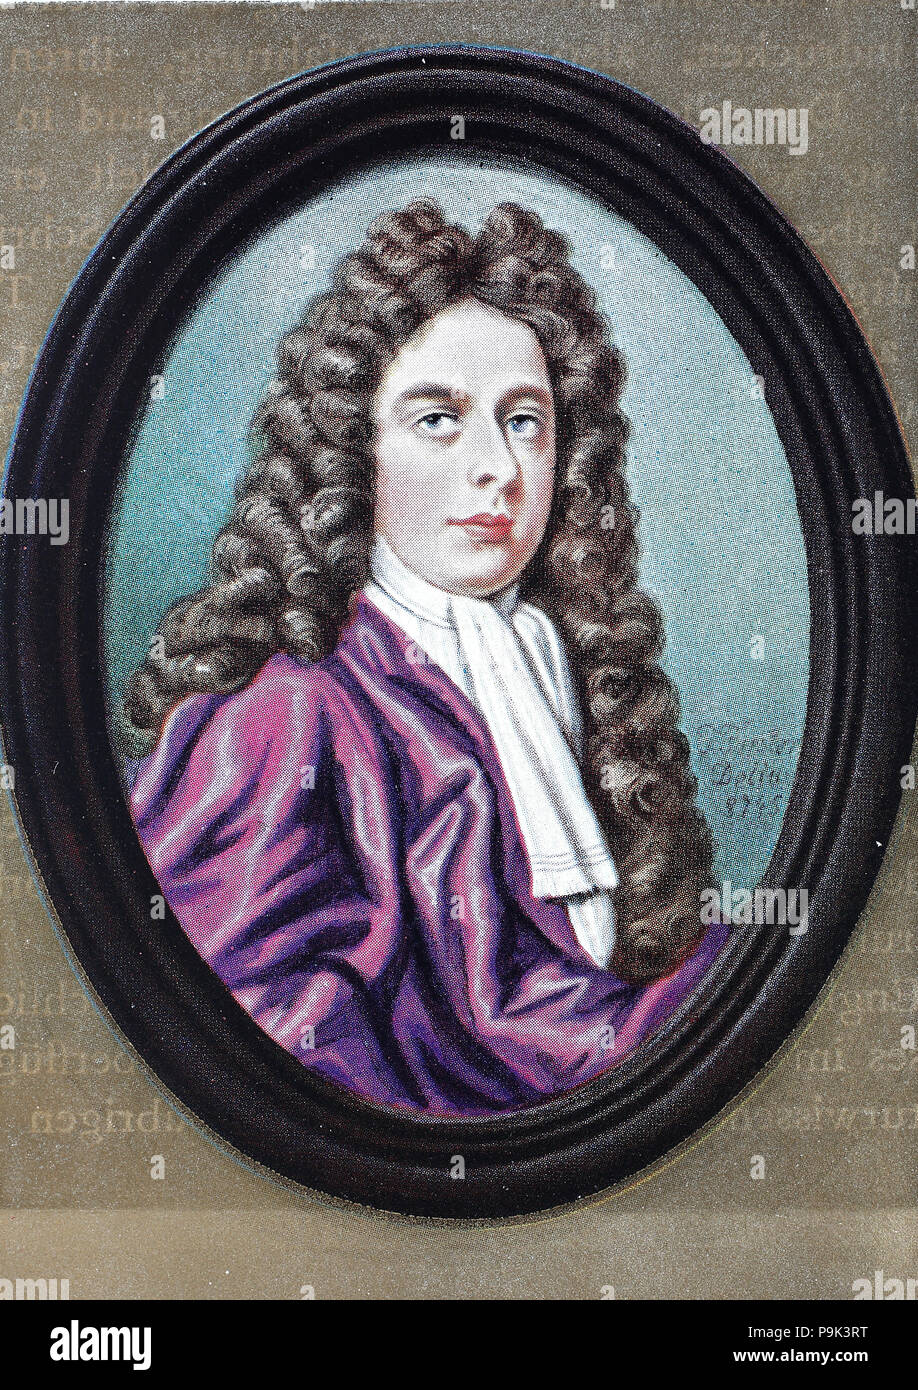 General John Churchill, 1st Duke of Marlborough, 1st Prince of Mindelheim, 1st Count of Nellenburg, Prince of the Holy Roman Empire, 26 May 1650 – 16 June 1722 O.S., was an English soldier and statesman whose career spanned the reigns of five monarchs, digital improved reproduction of an original print from the year 1900 - Stock Image